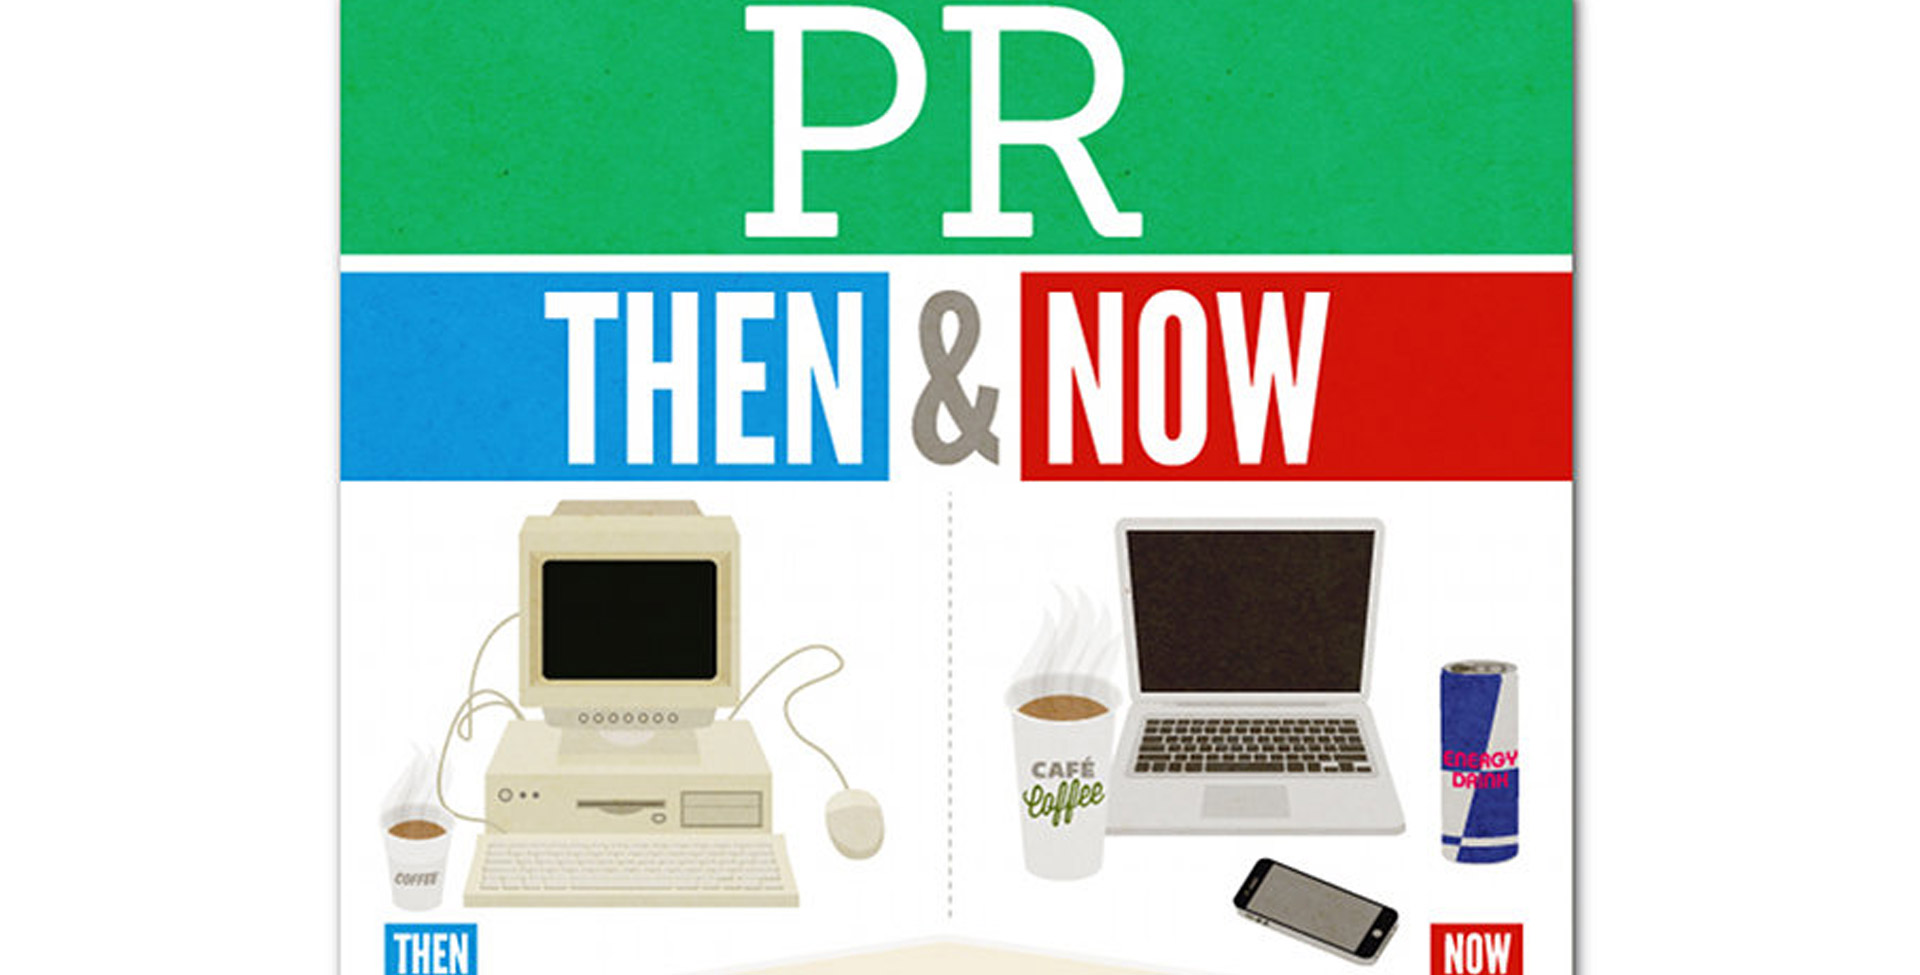 public relations, then and now